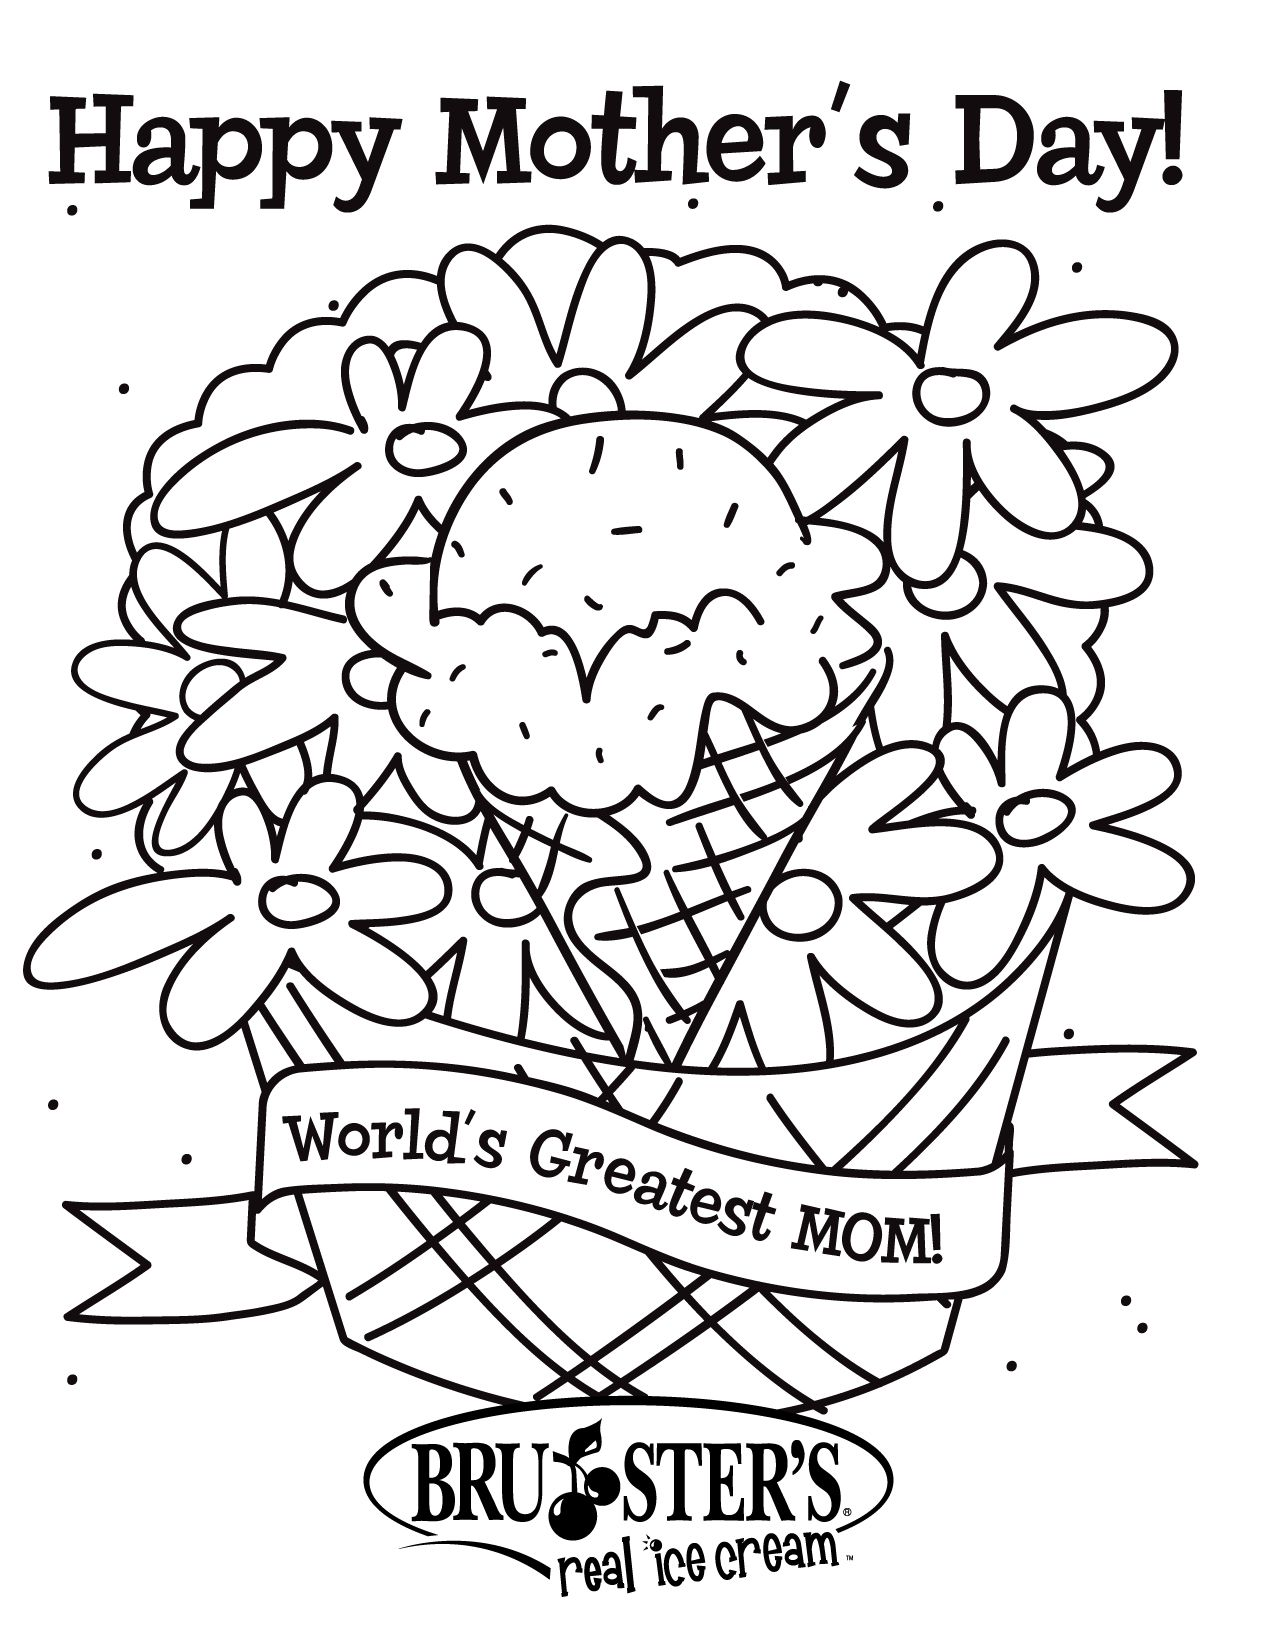 Free Printable Mothers Day Coloring Pages For Kids Mothers Day Coloring Pages Mothers Day Coloring Sheets Mom Coloring Pages